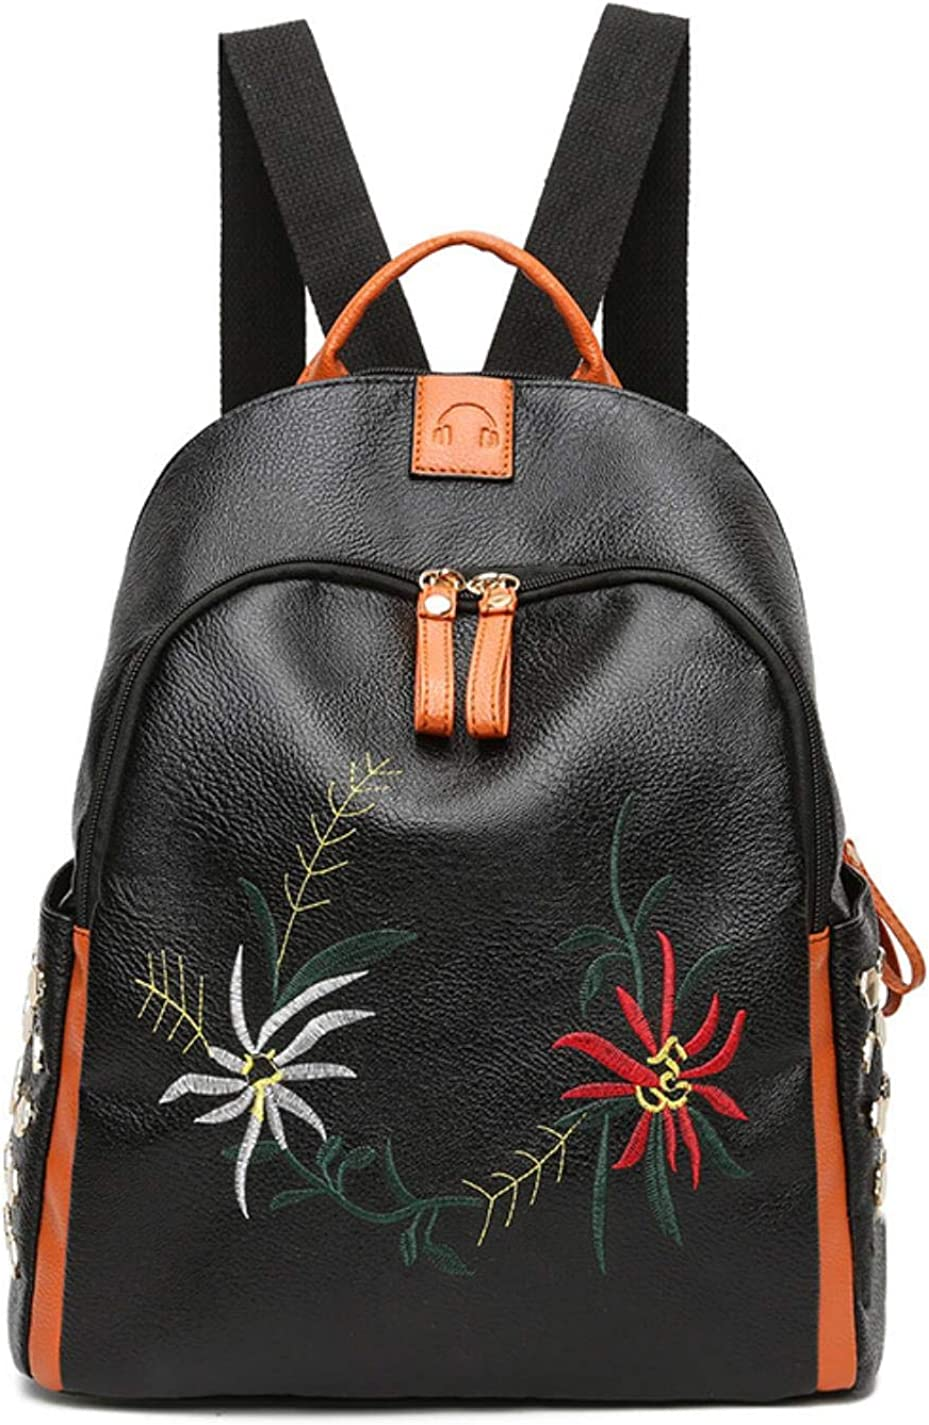 Womens embroidered studded leather backpack